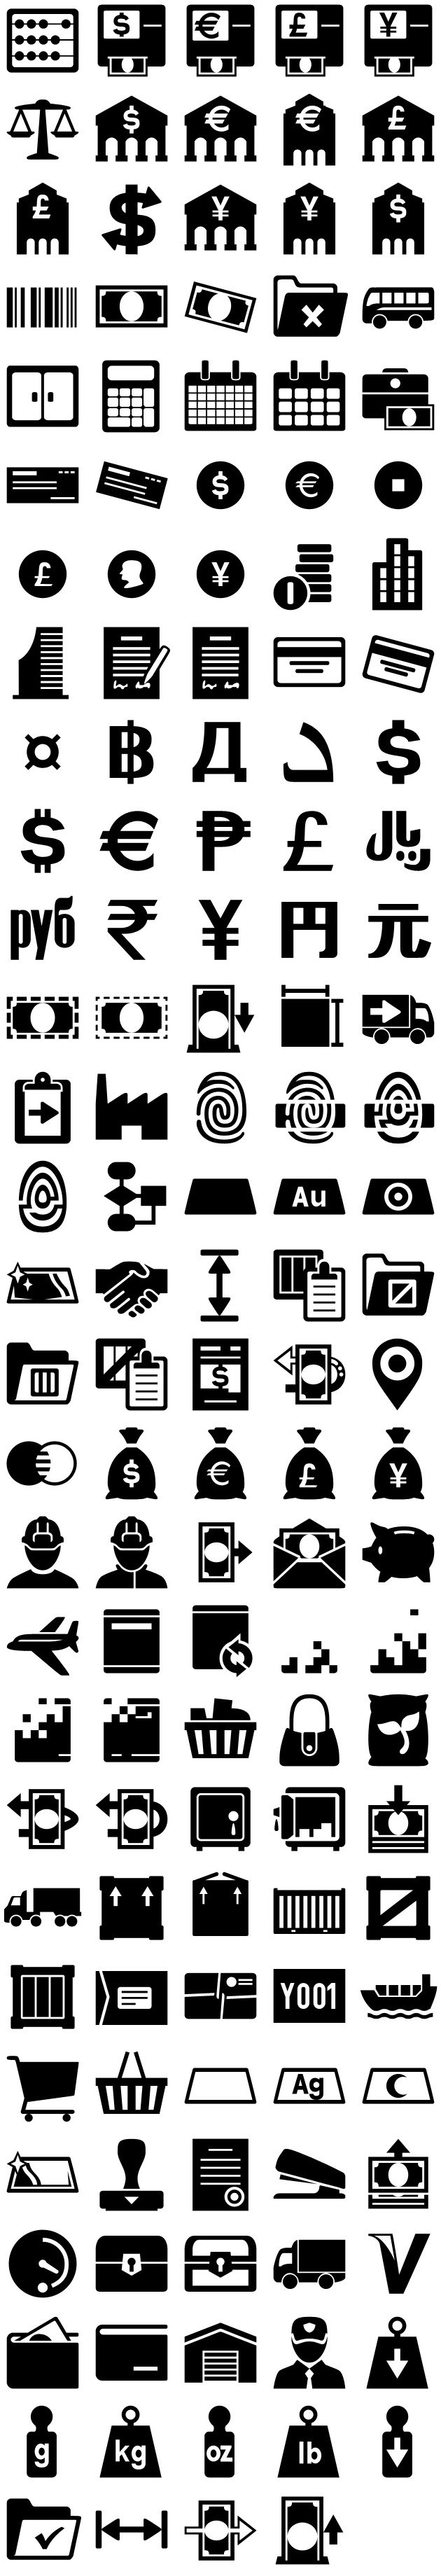 iphone icons accounting 114px